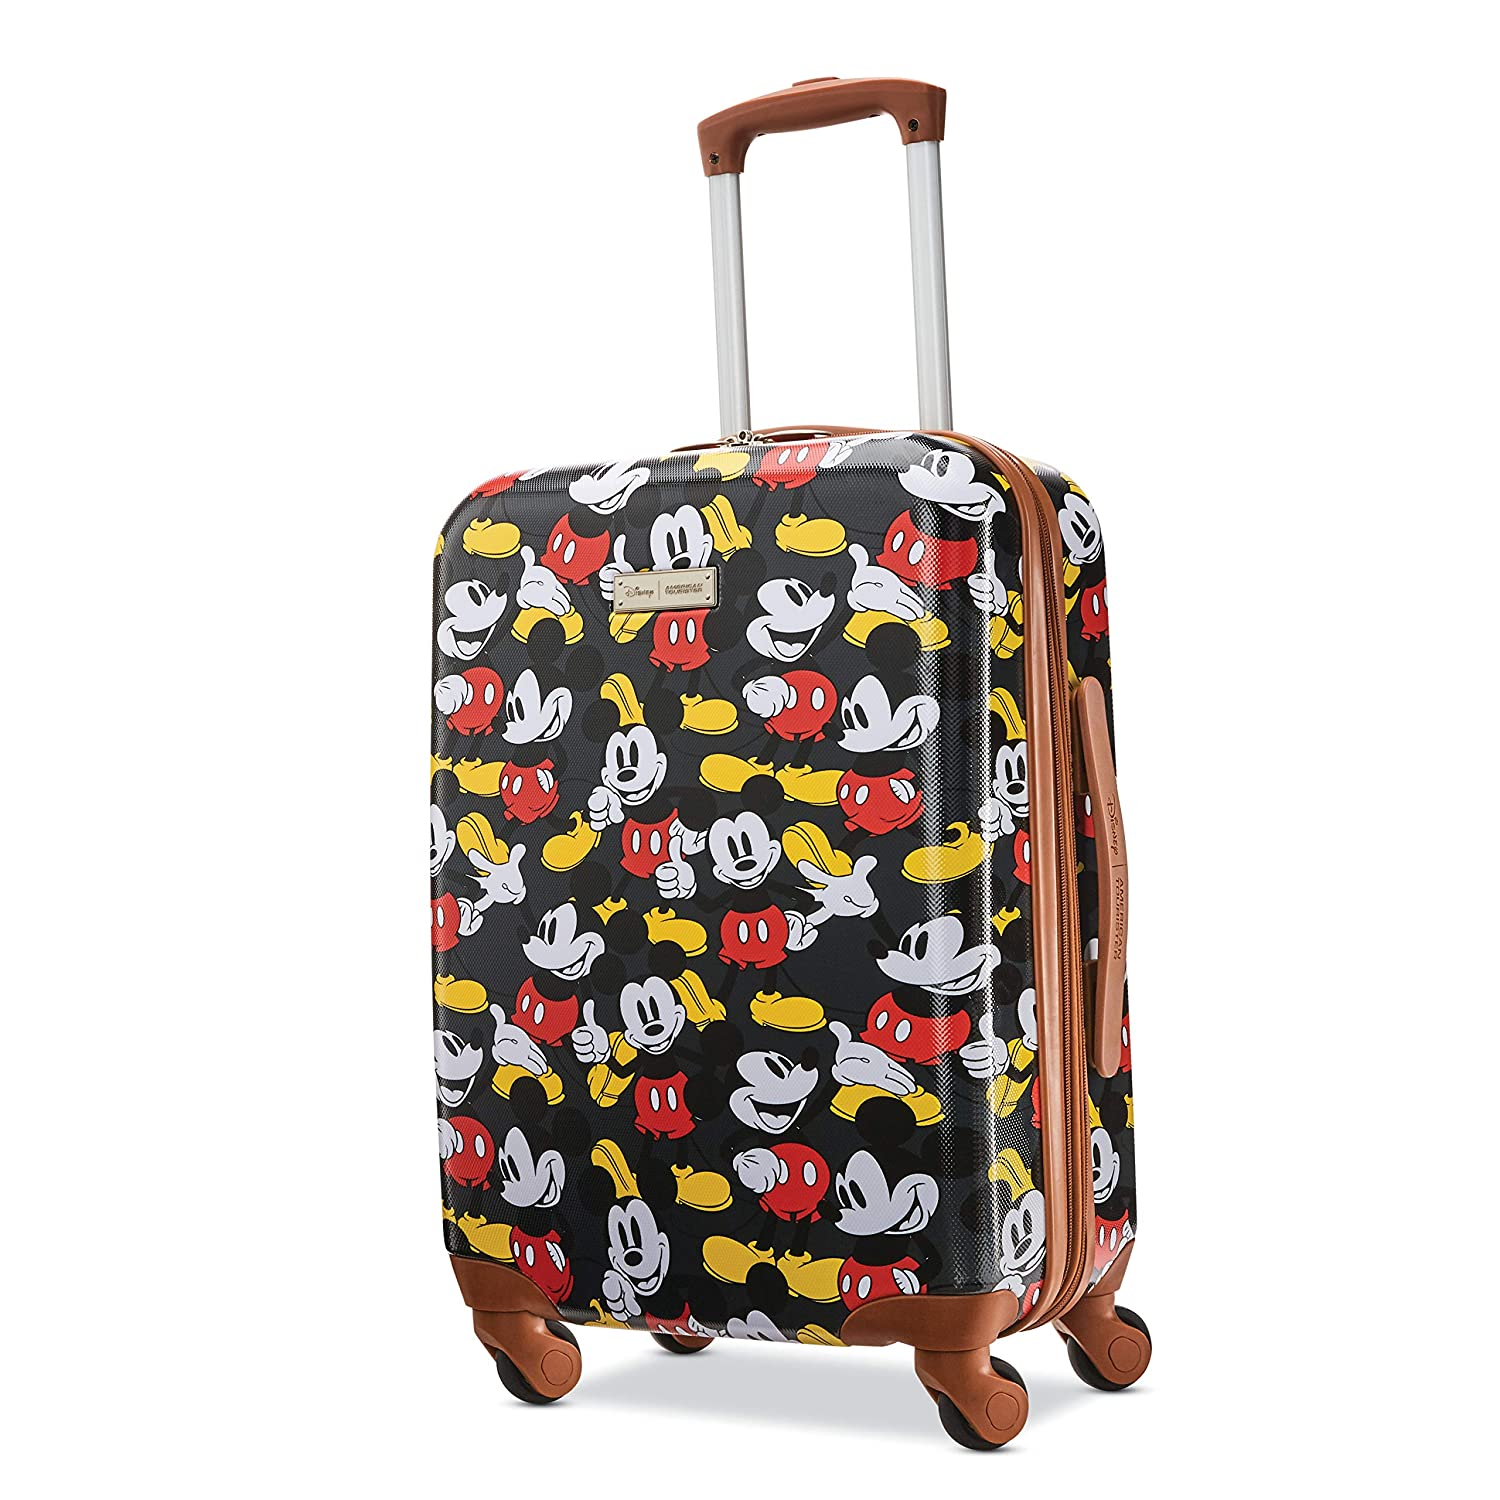 Image of American Tourister Carry-on, Mickey Mouse Classic Luggage